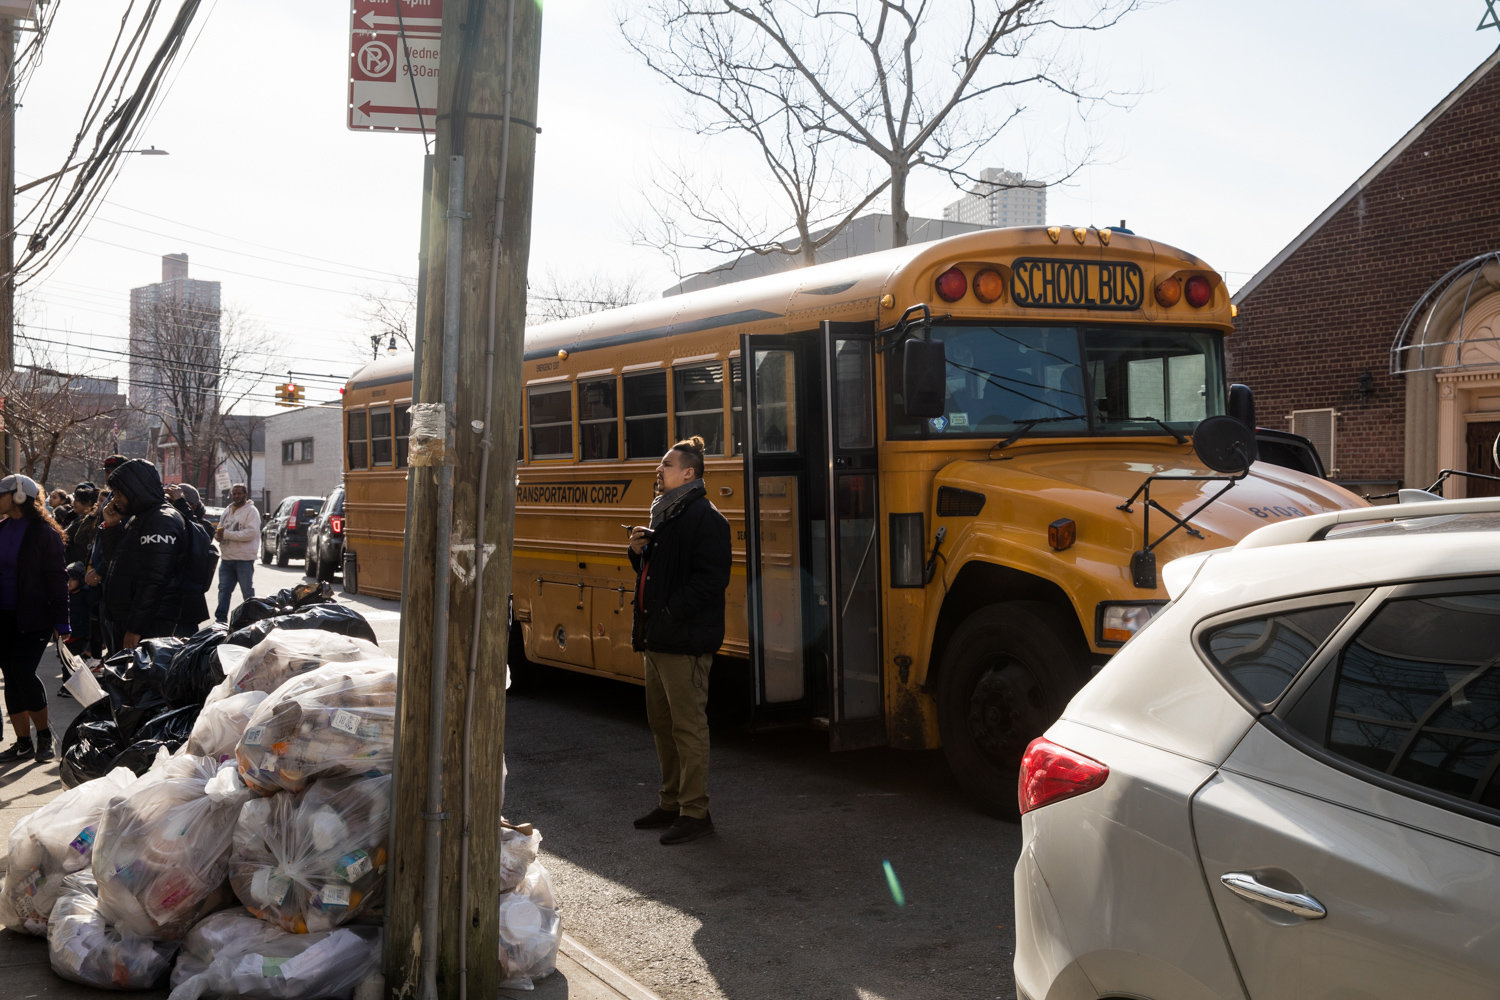 Amber Charter School students board a school bus, an activity that could soon be a thing of the past if administrators get their way. Some parents are fighting the school's plan to discontinue bus service later this year.